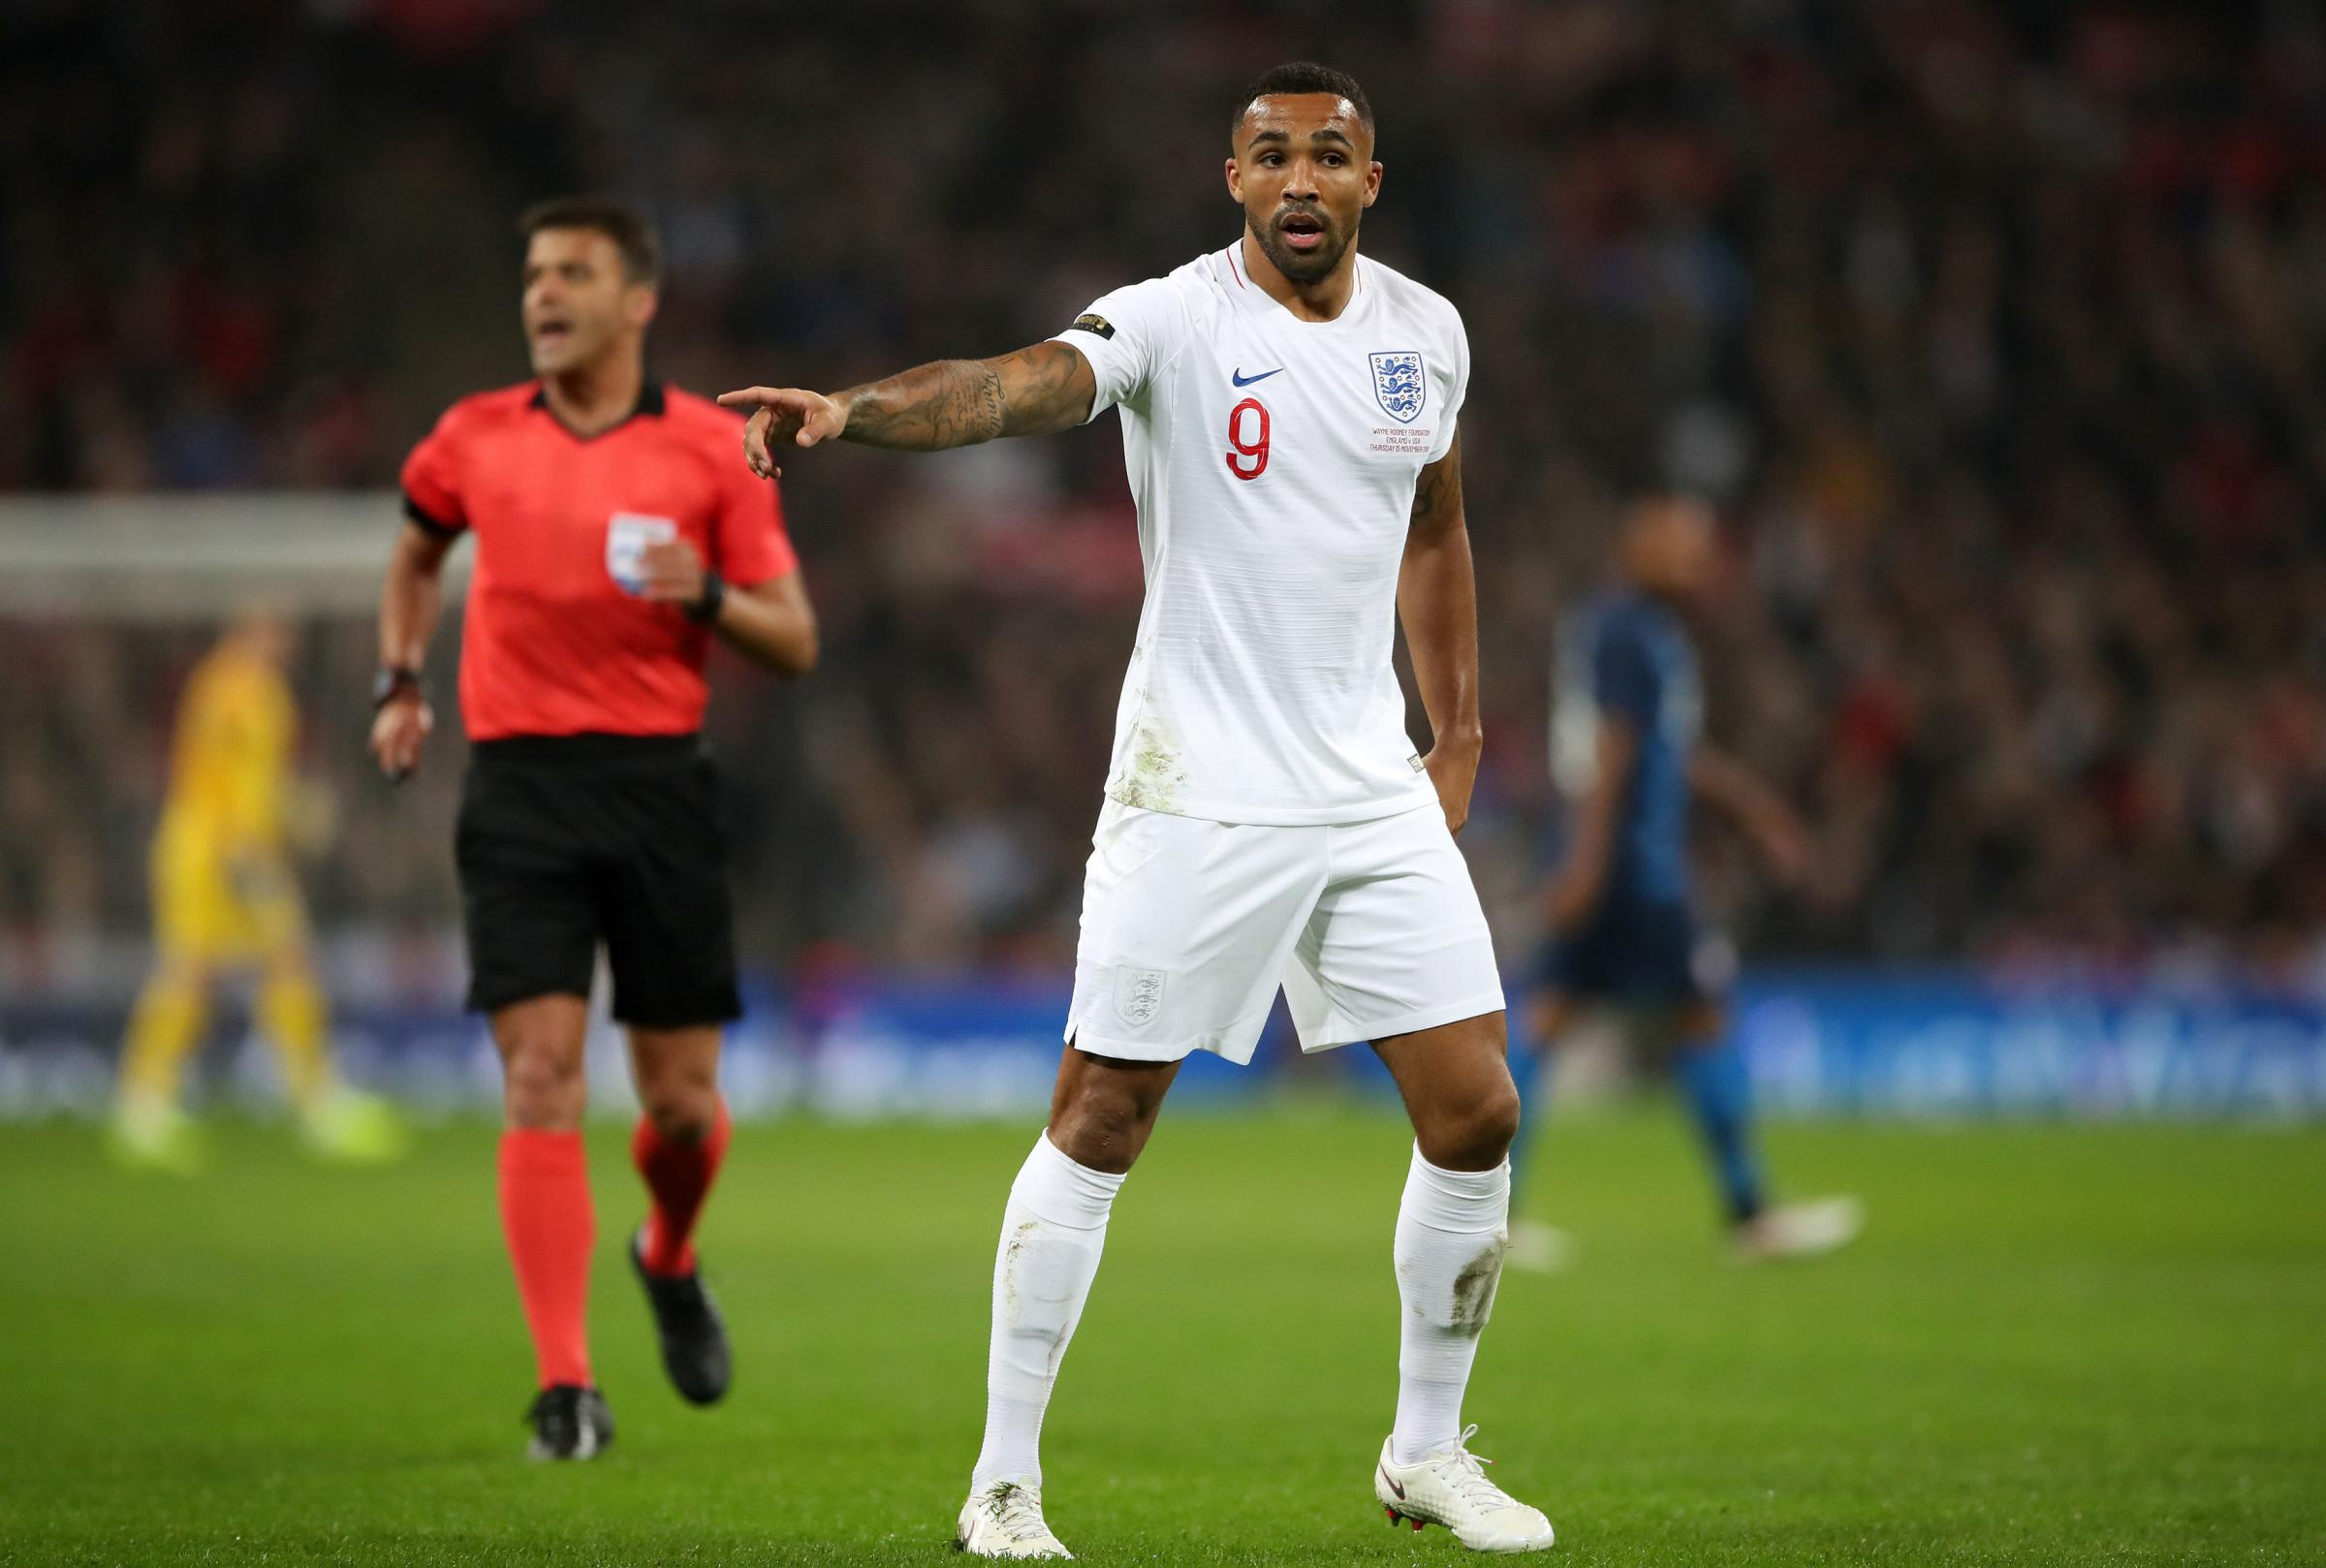 AFC Bournemouth's Callum Wilson named in England's provisional Nations League squad